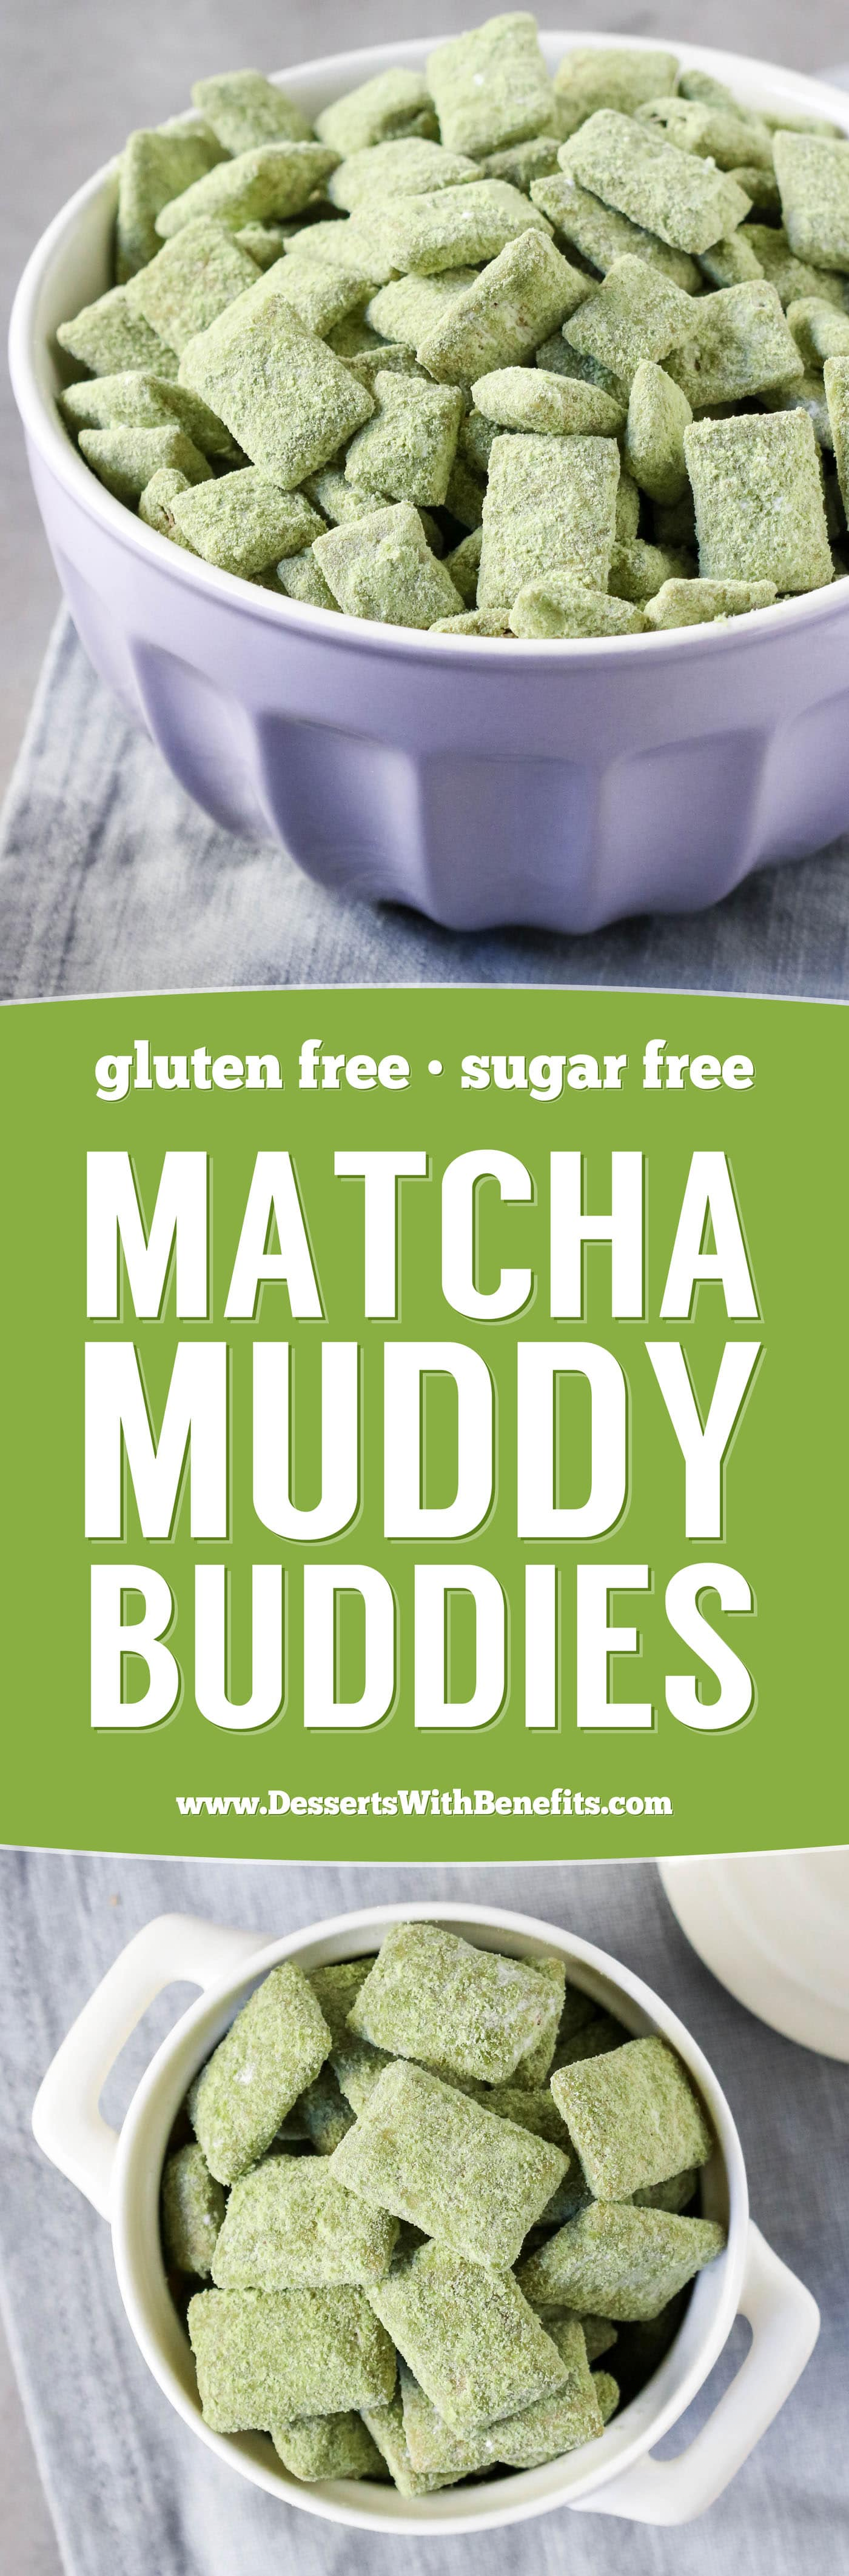 These Matcha Green Tea Muddy Buddies (Puppy Chow recipe) are the perfect, crunchy snack to satisfy the snack monster in you! Easy, no-bake, healthy, high protein, high fiber, and sugar free too.